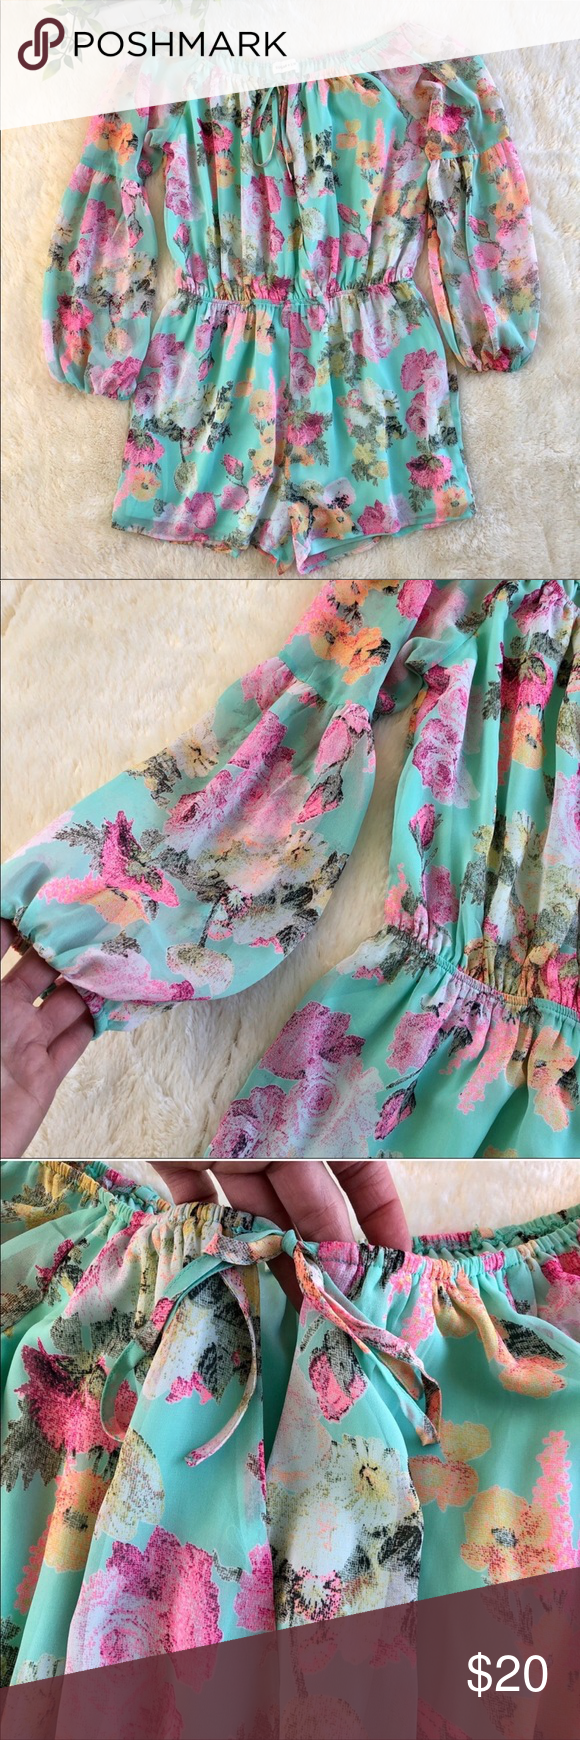 Sugar lips blue pink floral romper belle sleeves Sugar lips blue pink floral shirts romper with belle sleeves.I absolutely love this romper! I bought it and took it on a cruise with me but the shorts are just too short for my taste. I love the bright colors and print.it is very flattering with the sheer bell sleeves and the off the shoulder design.the sleeves are sheer.has an elastic waist and A keyhole neckline with a drawstring. I typically wear a size 10 so this would fit a size 8/10perfectly